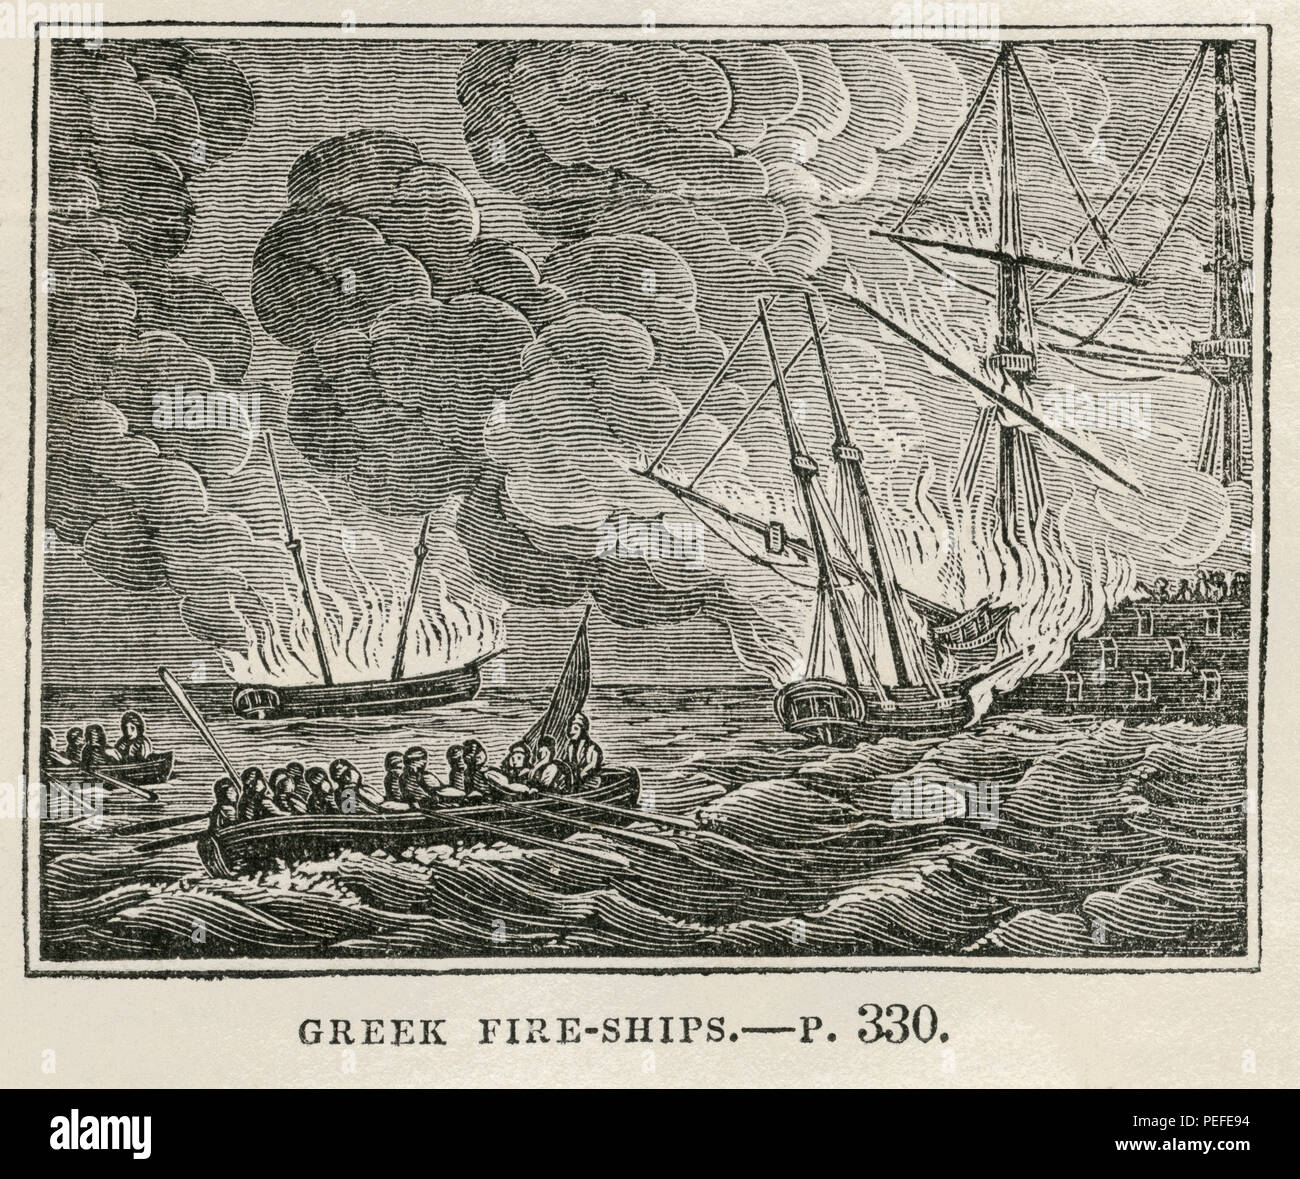 Greek Fire-Ships, Illustration from the Book, Historical Cabinet, L.H. Young Publisher, New Haven, 1834 - Stock Image